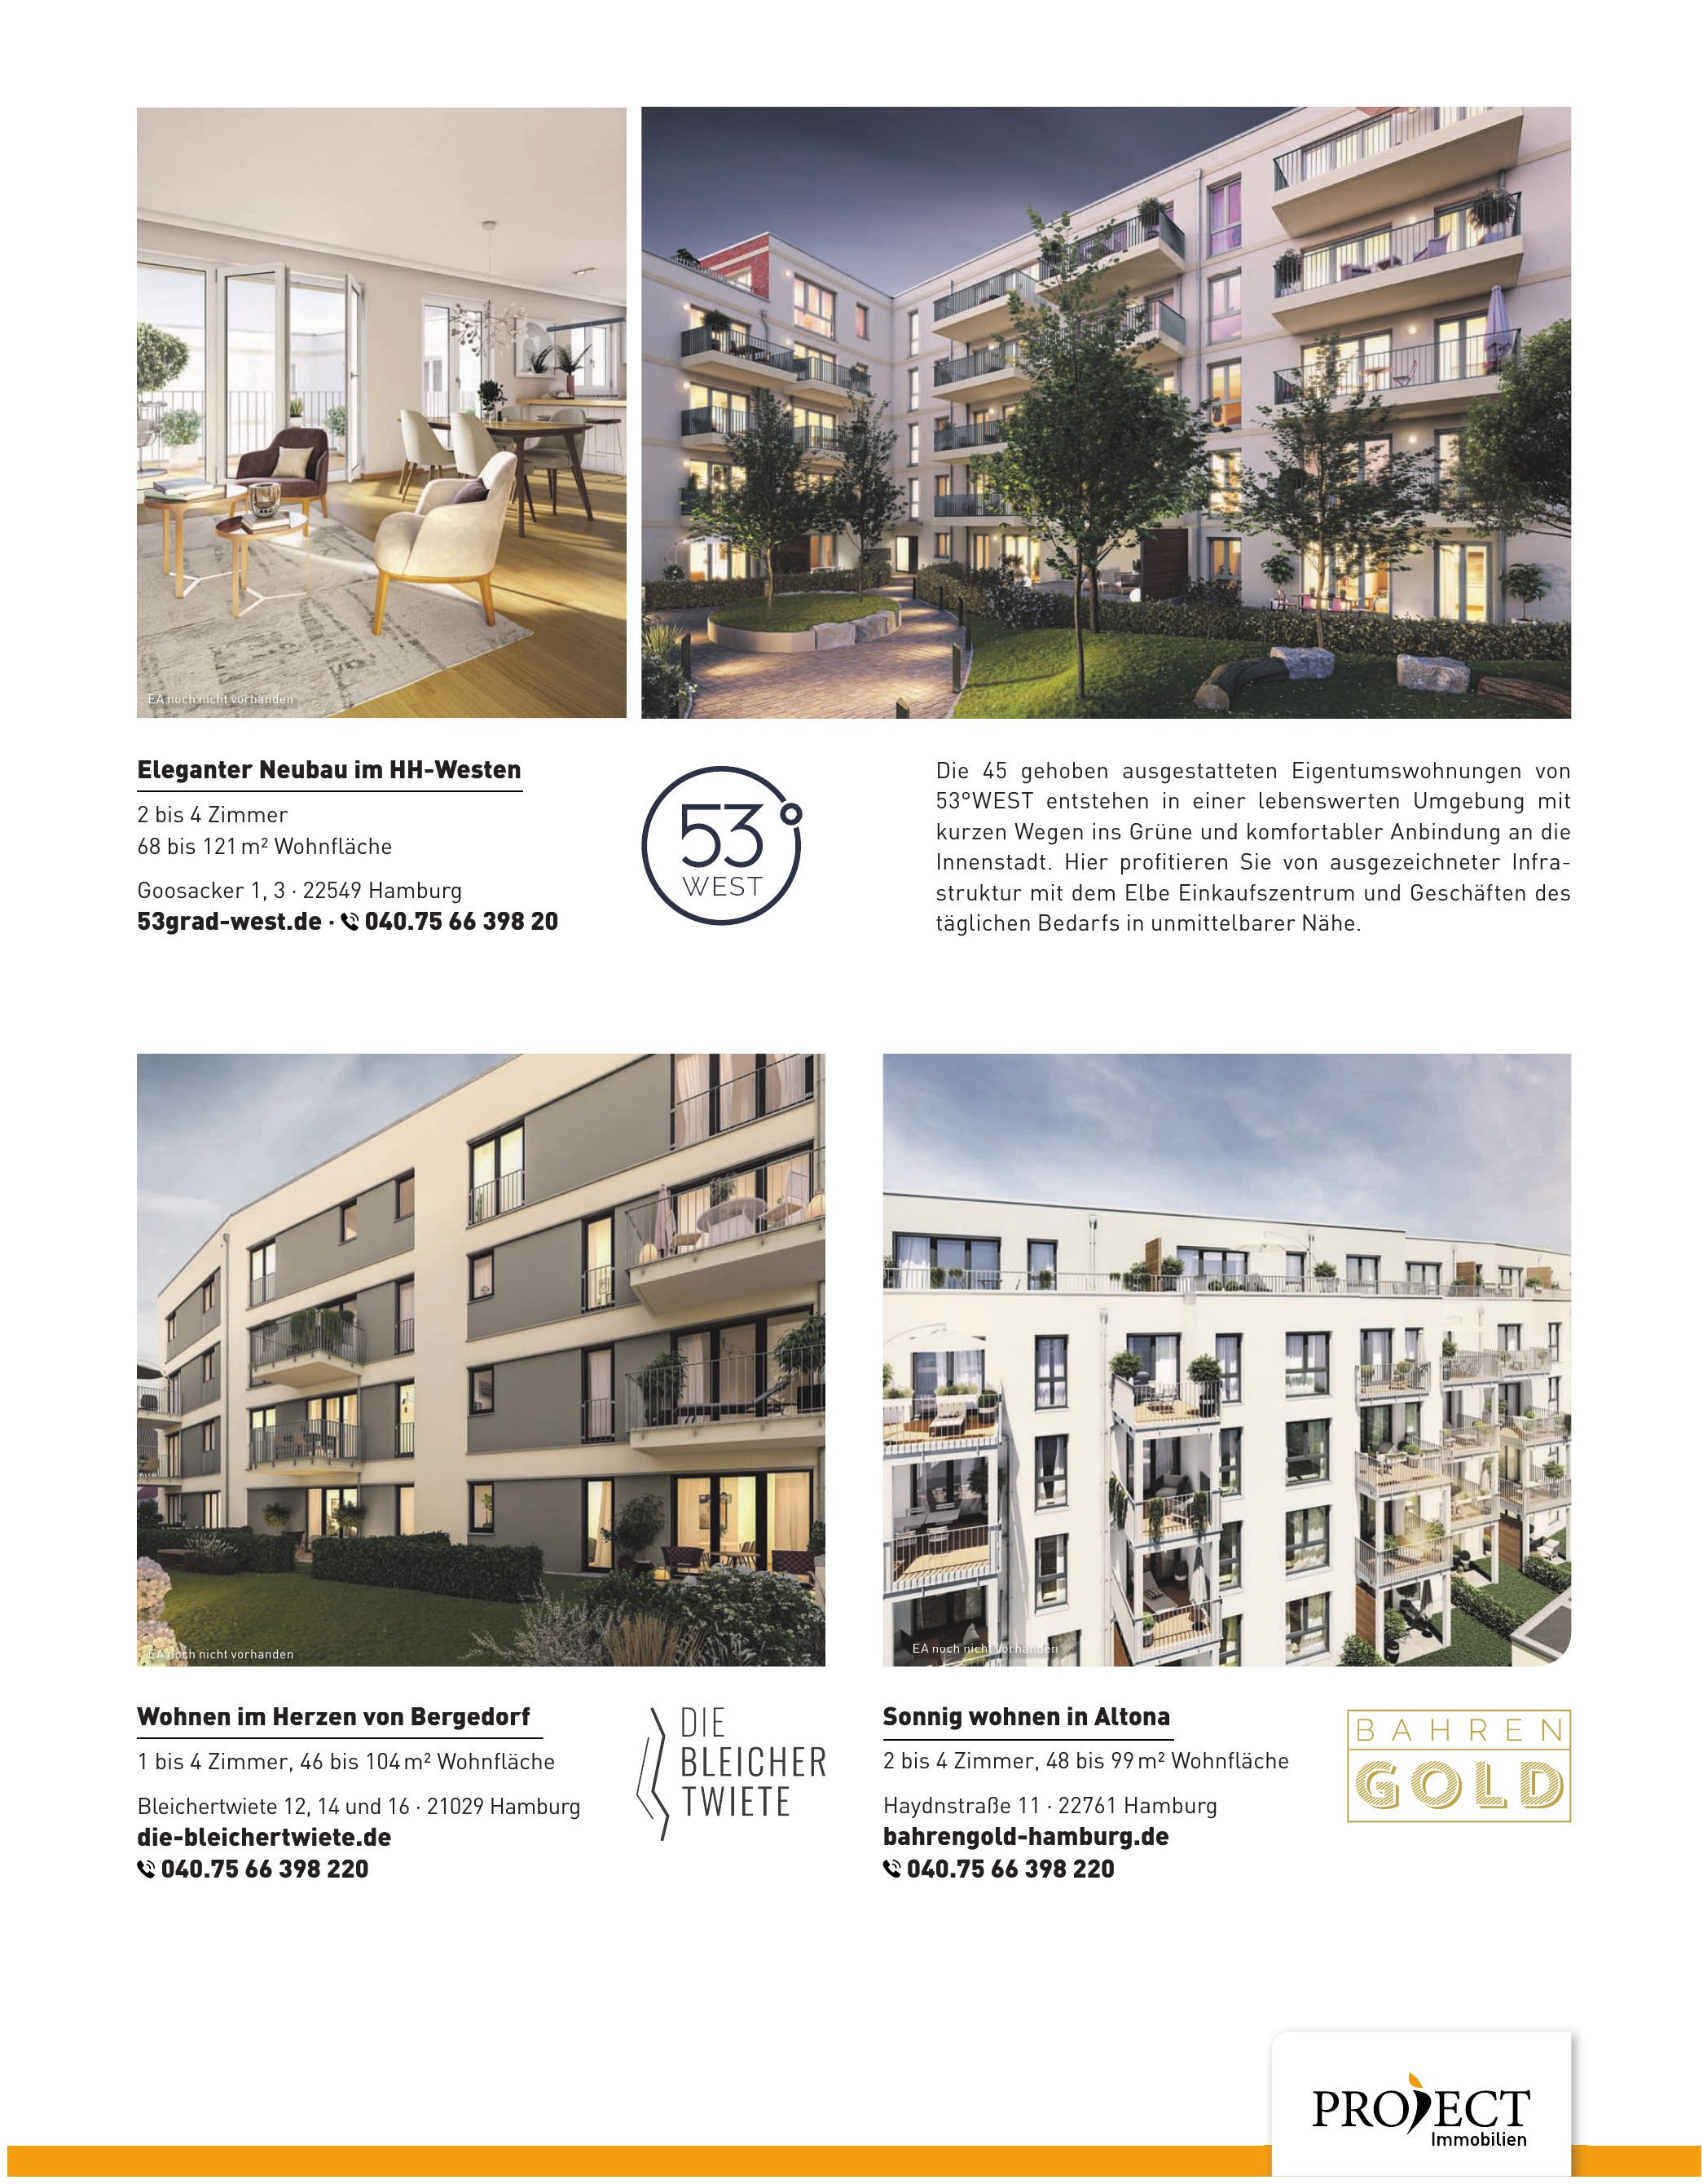 Project Immobilien